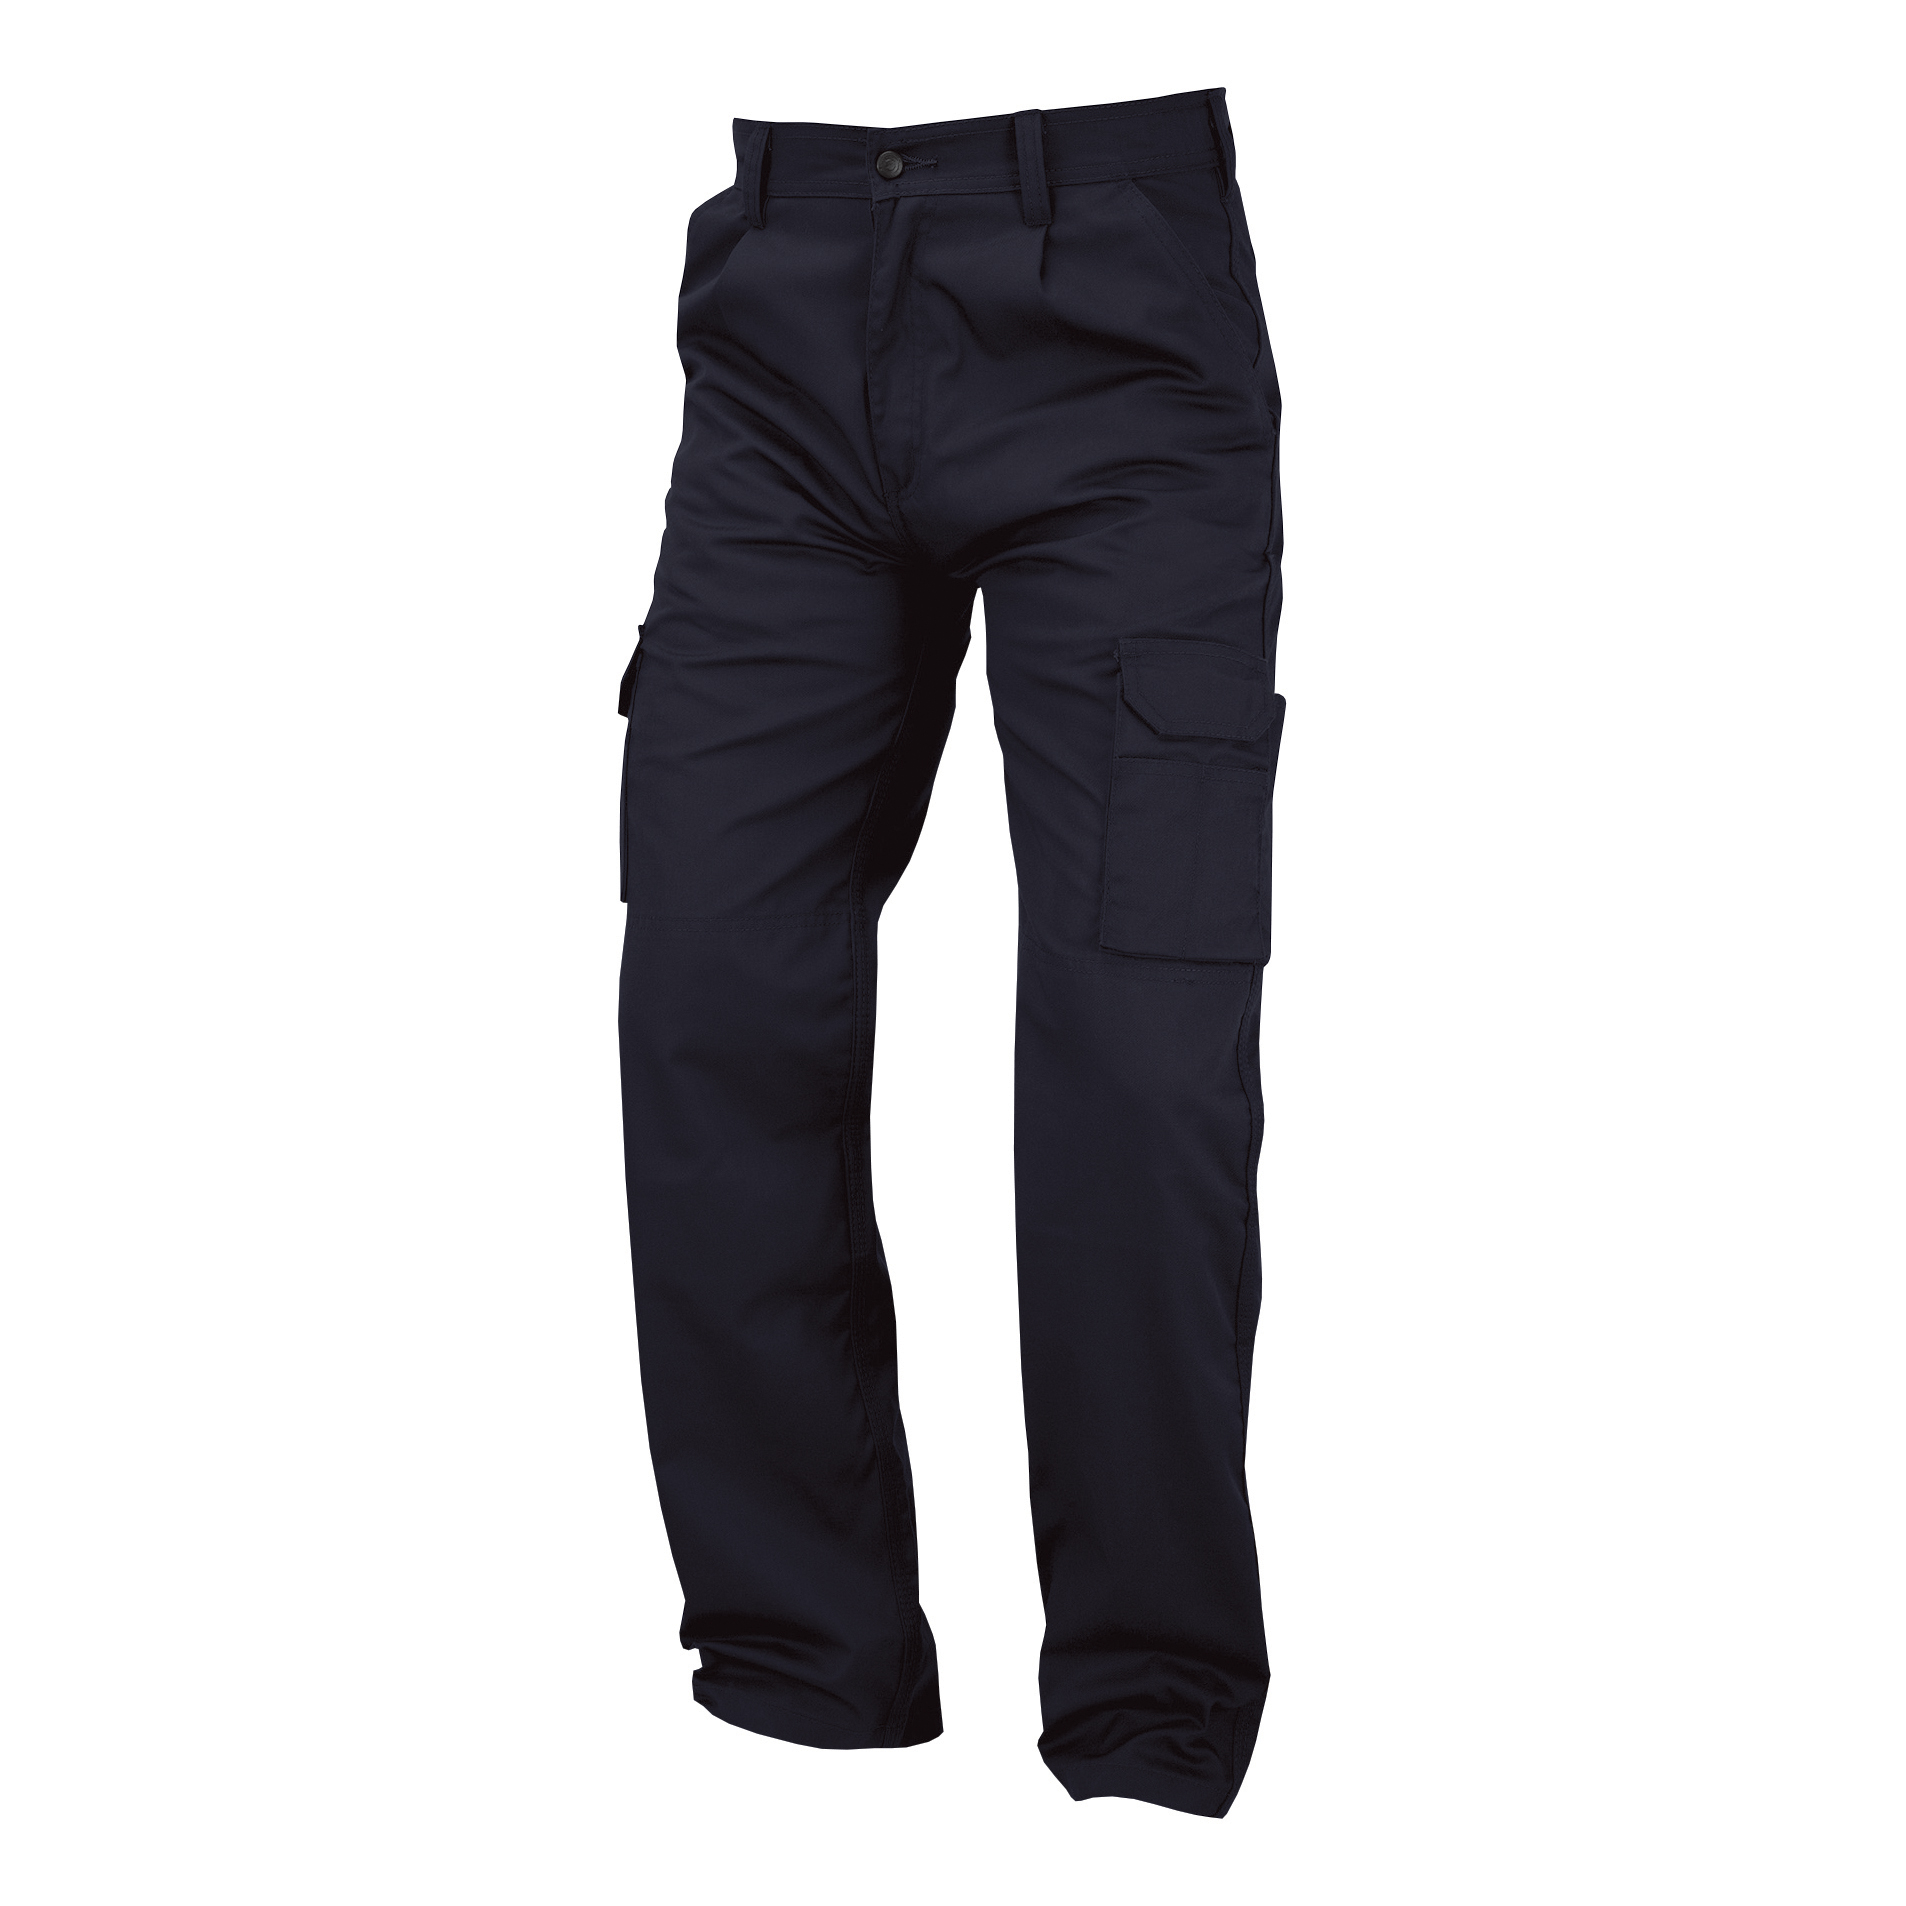 Combat Trousers Polycotton with Pockets 38in Regular Navy Blue Ref PCTHWN38 *1-3 Days Lead Time*